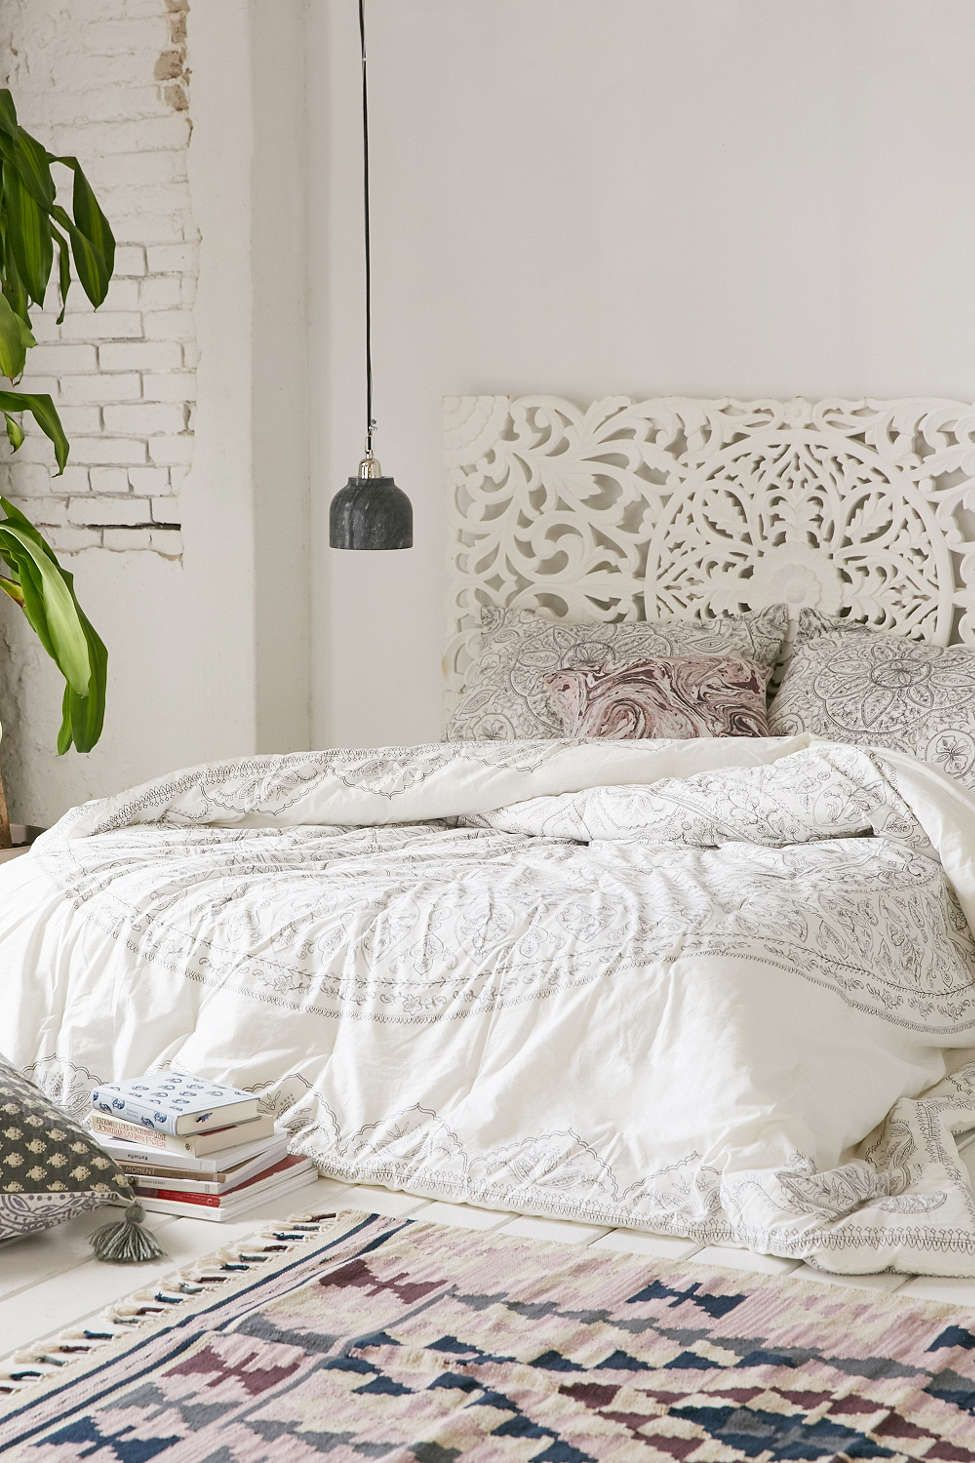 Plum Amp Bow Soukay Delicate Comforter Urban Outfitters